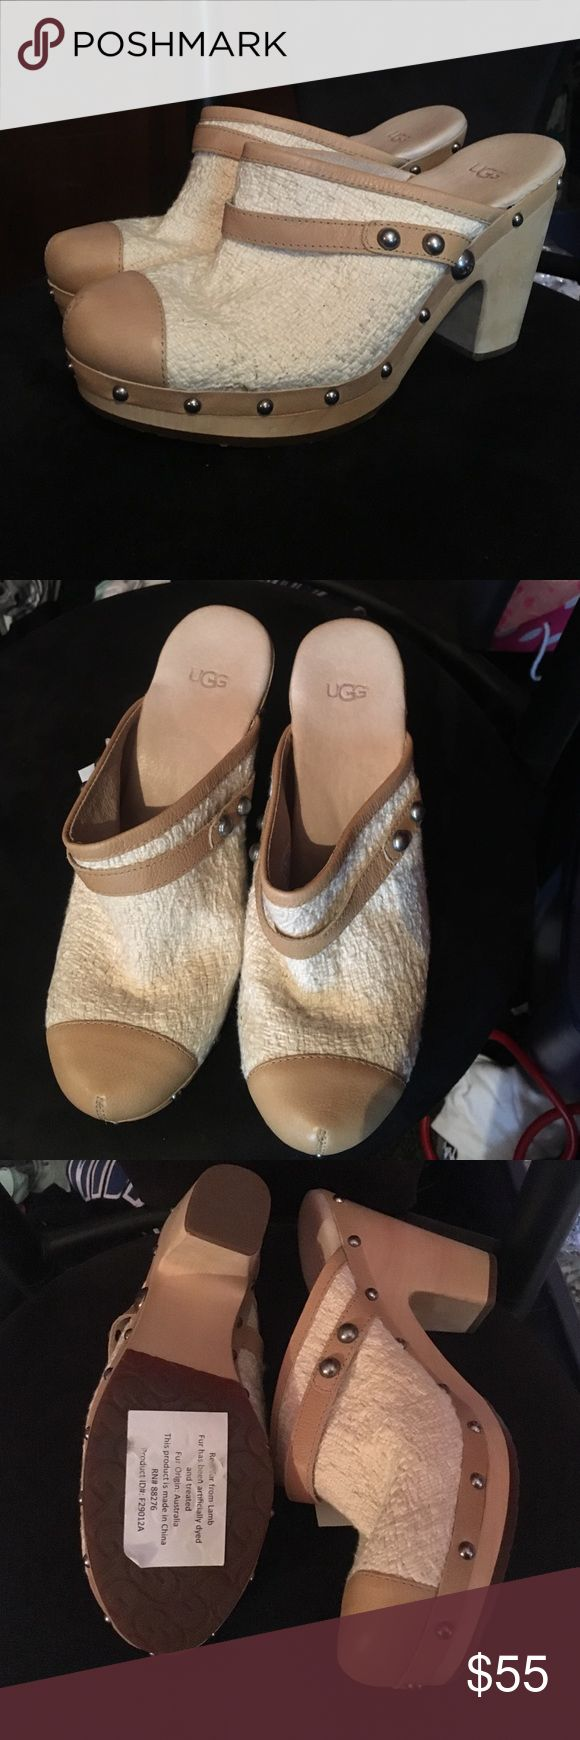 UGG Clogs Size 10 UGG Clogs. NWT from TJ Maxx. Never worn. Size 10. Tan colors with silver stud detail. UGG Shoes Mules & Clogs